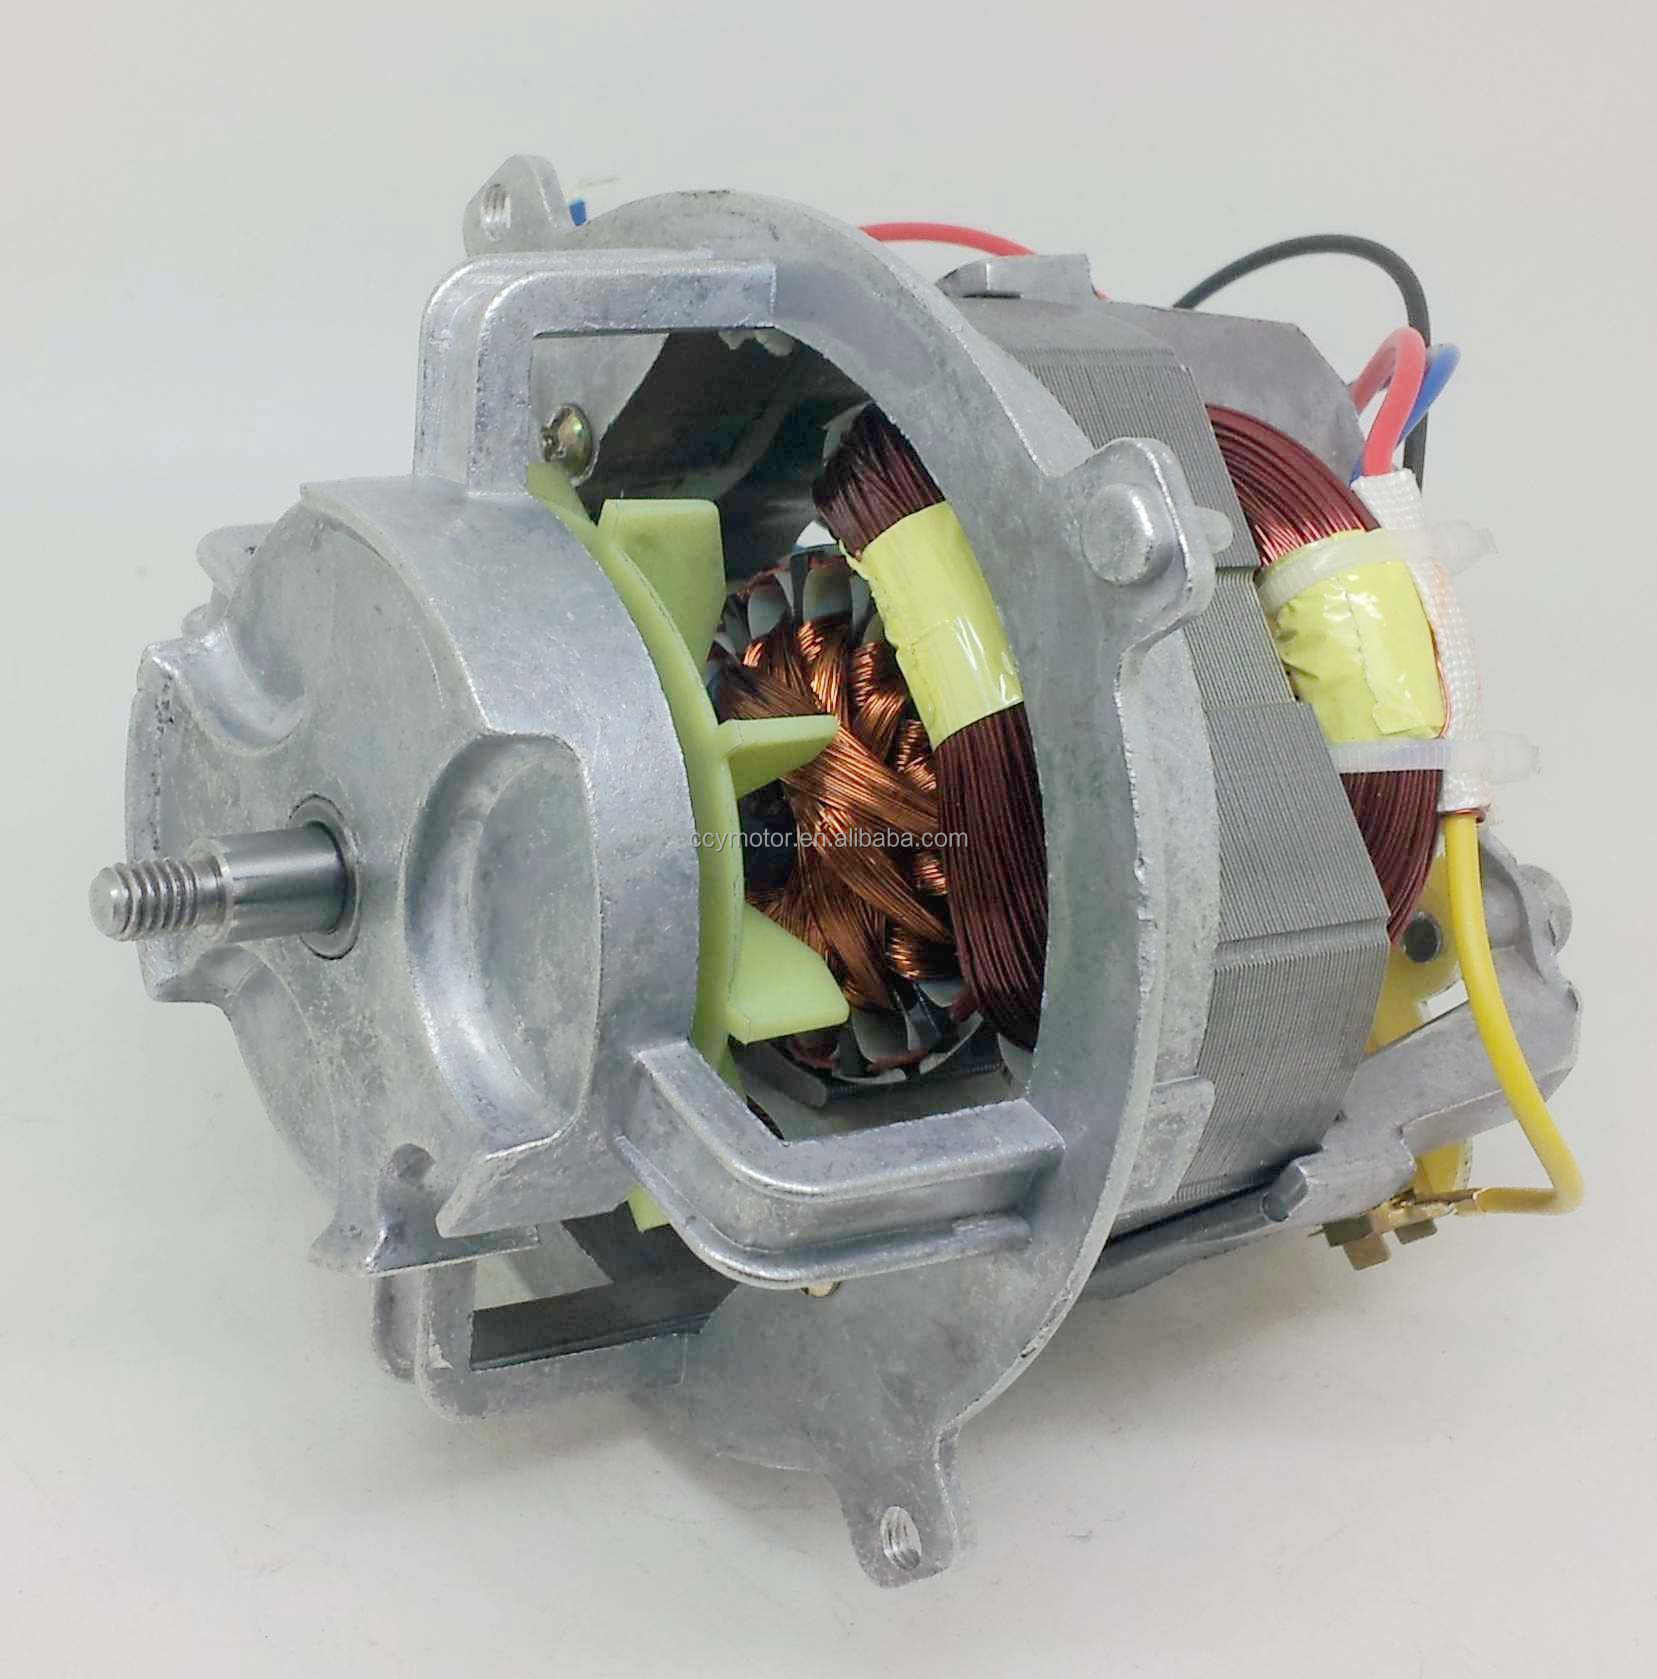 AC MOTOR 8825A UNIVERSAL MOTOR FOR FOOD PROCESSOR, MULTIFUNCTIONAL BLENDER, MIXER